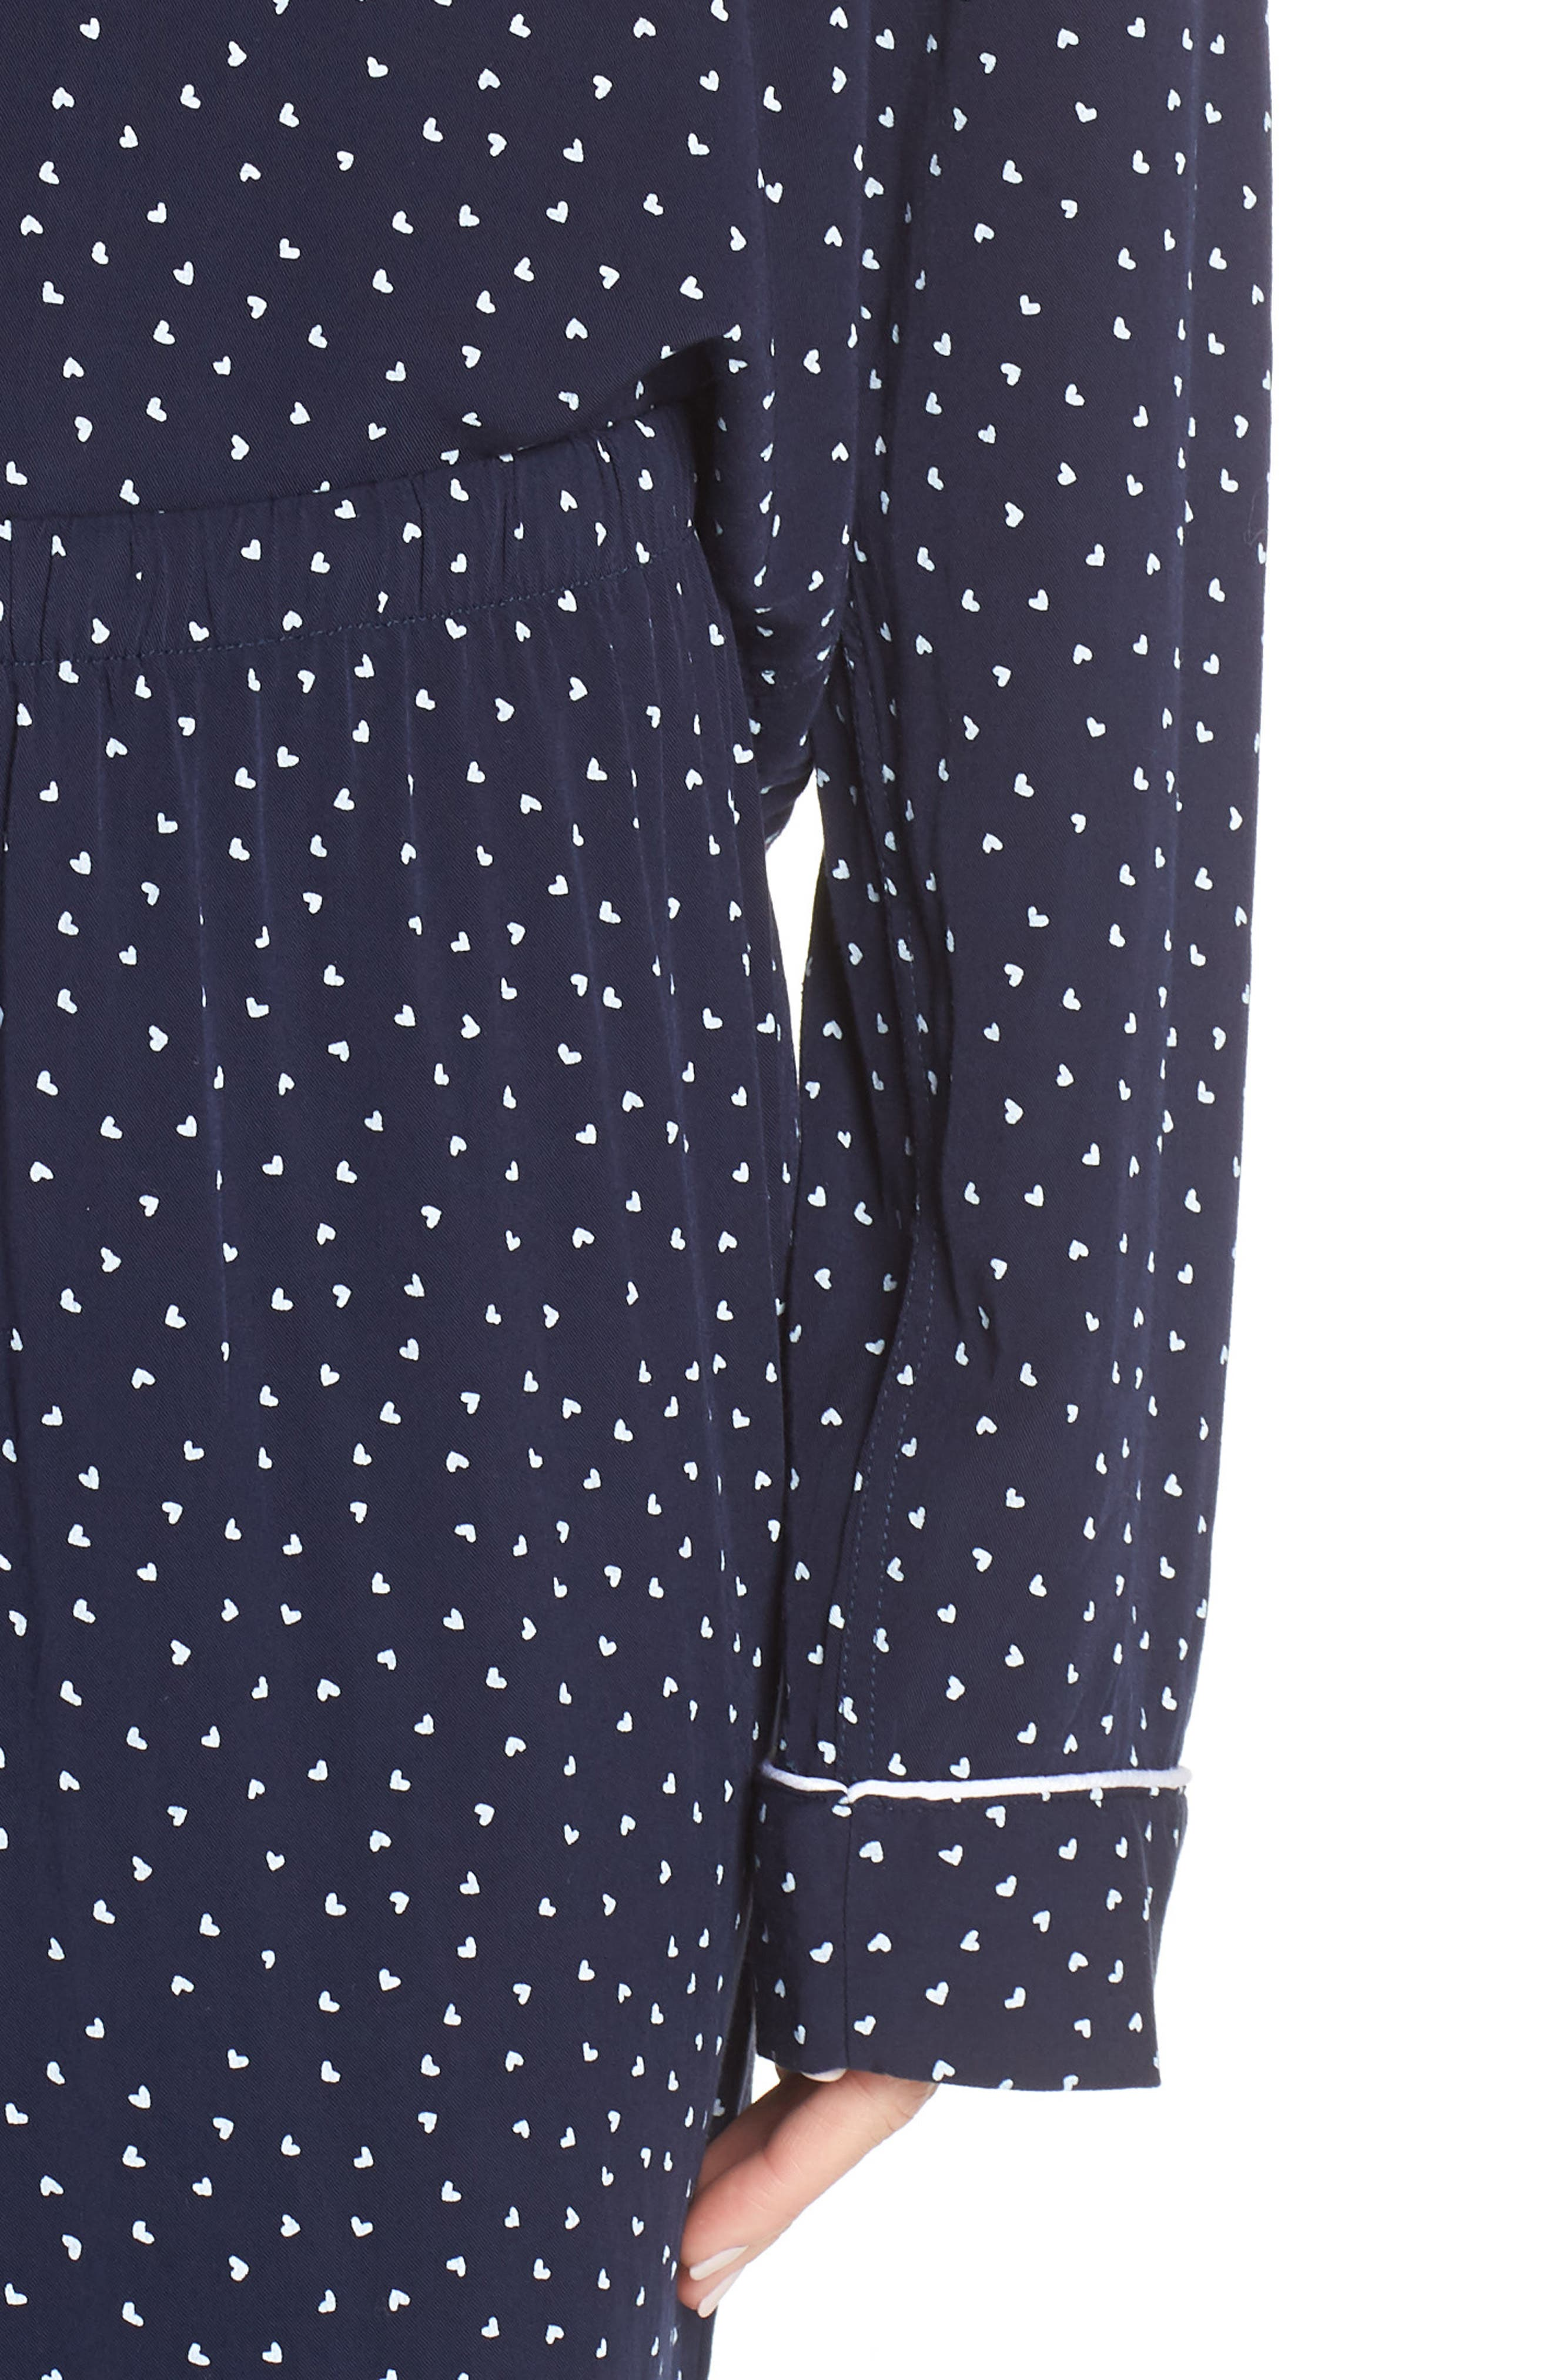 Heart Print Pajamas,                             Alternate thumbnail 4, color,                             NAVY MINI HEARTS